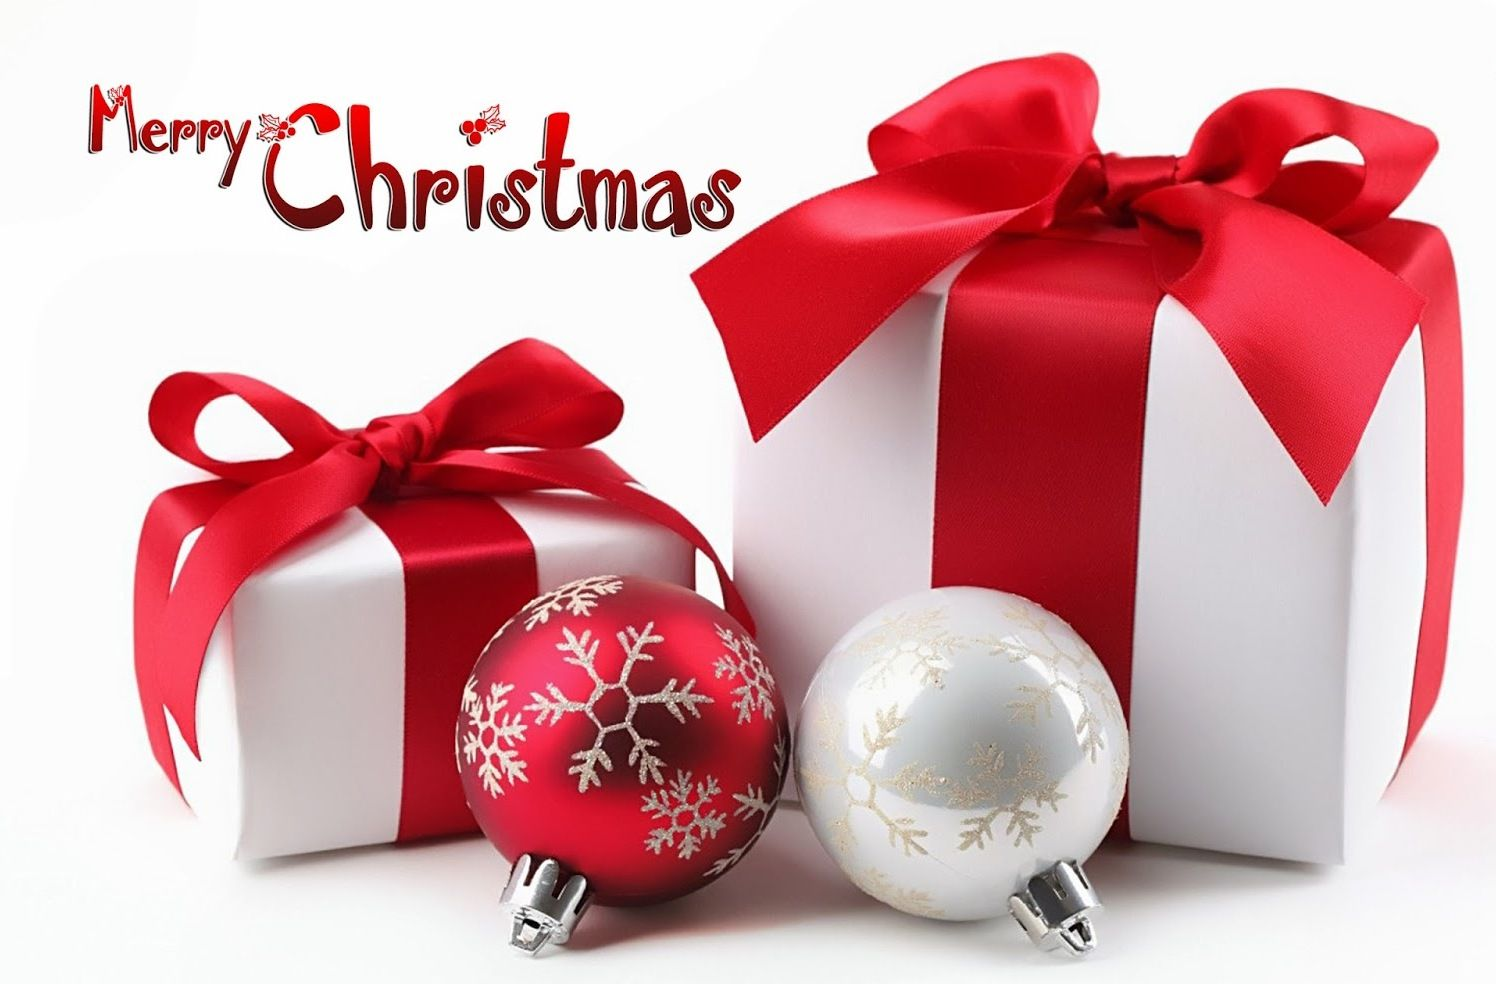 Christmas tree decoration and dress gifts by santa claus news